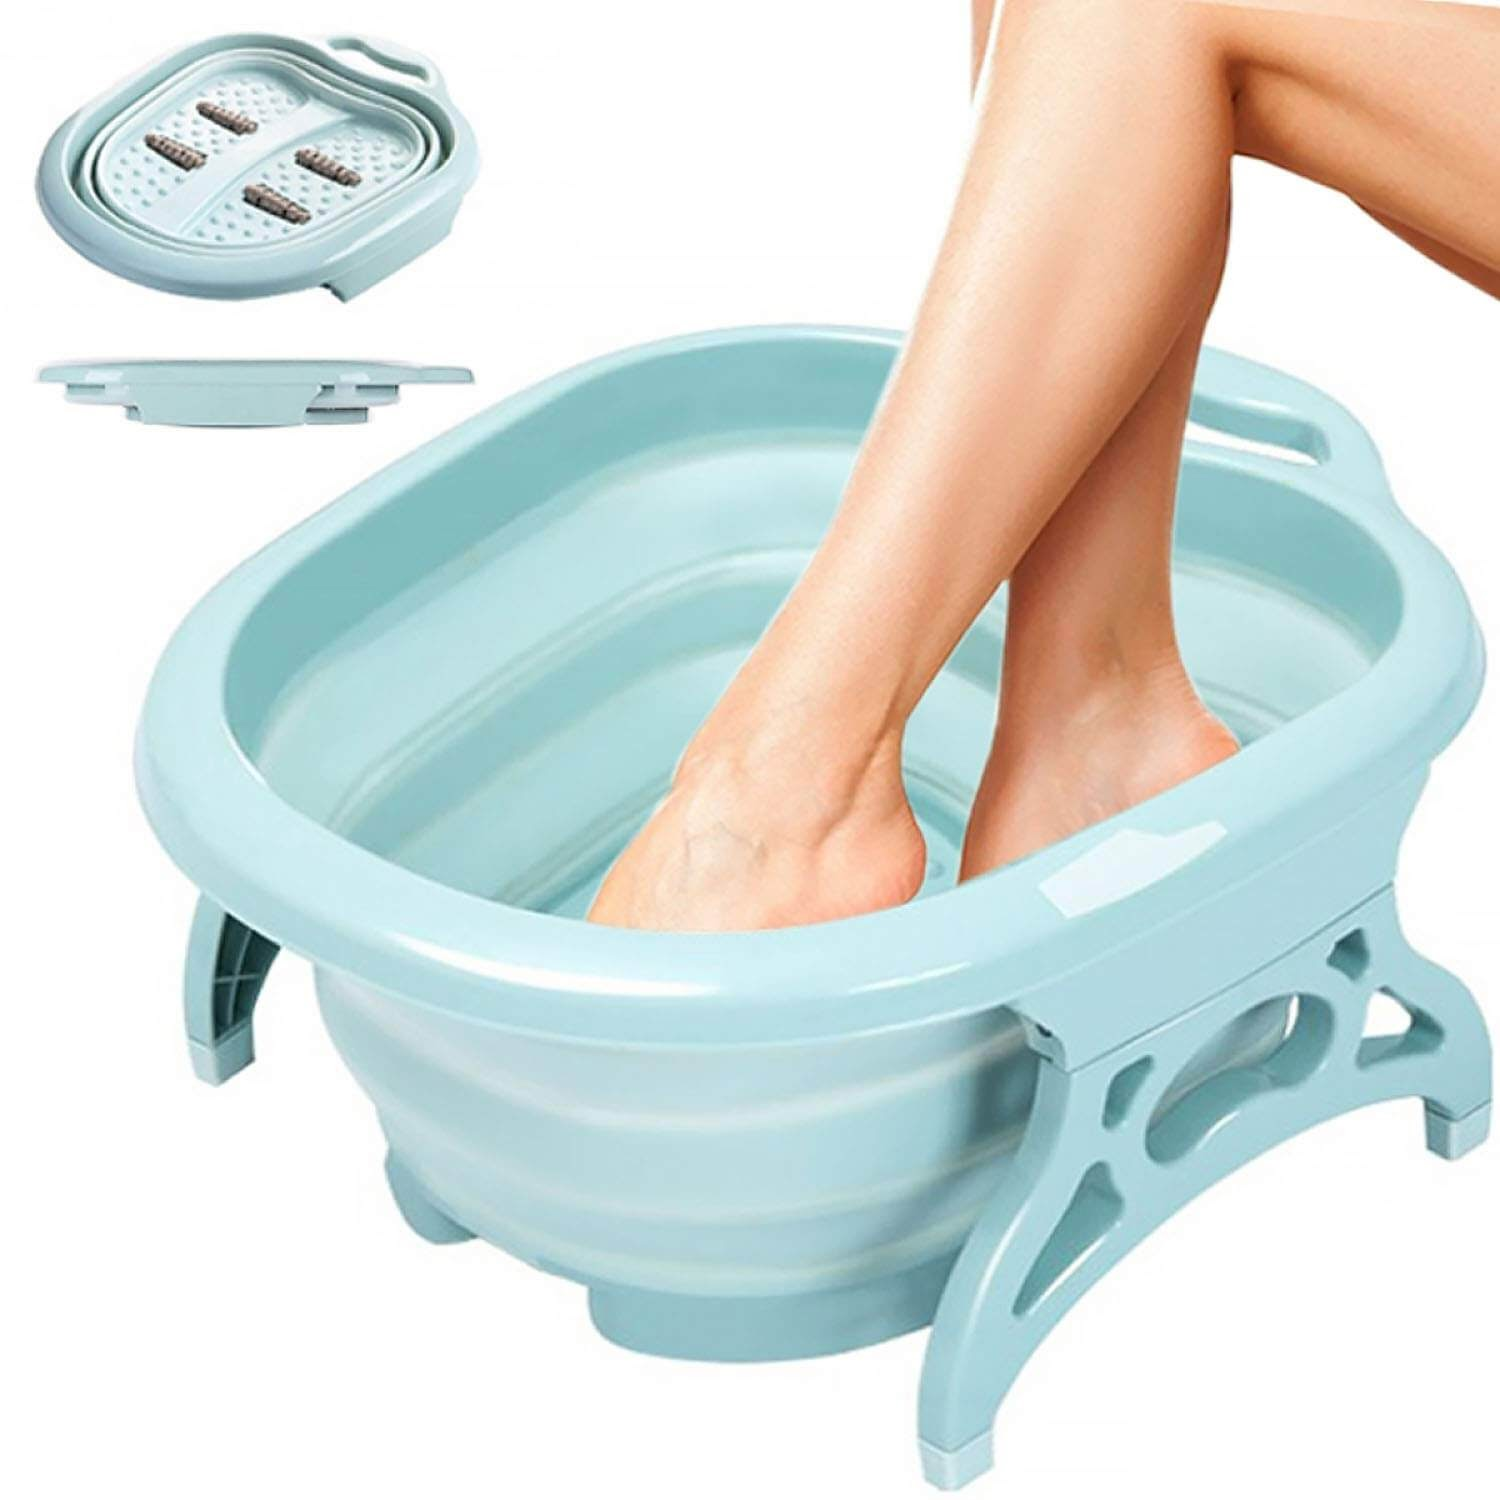 Foot Spa Collapsible Foot Bath